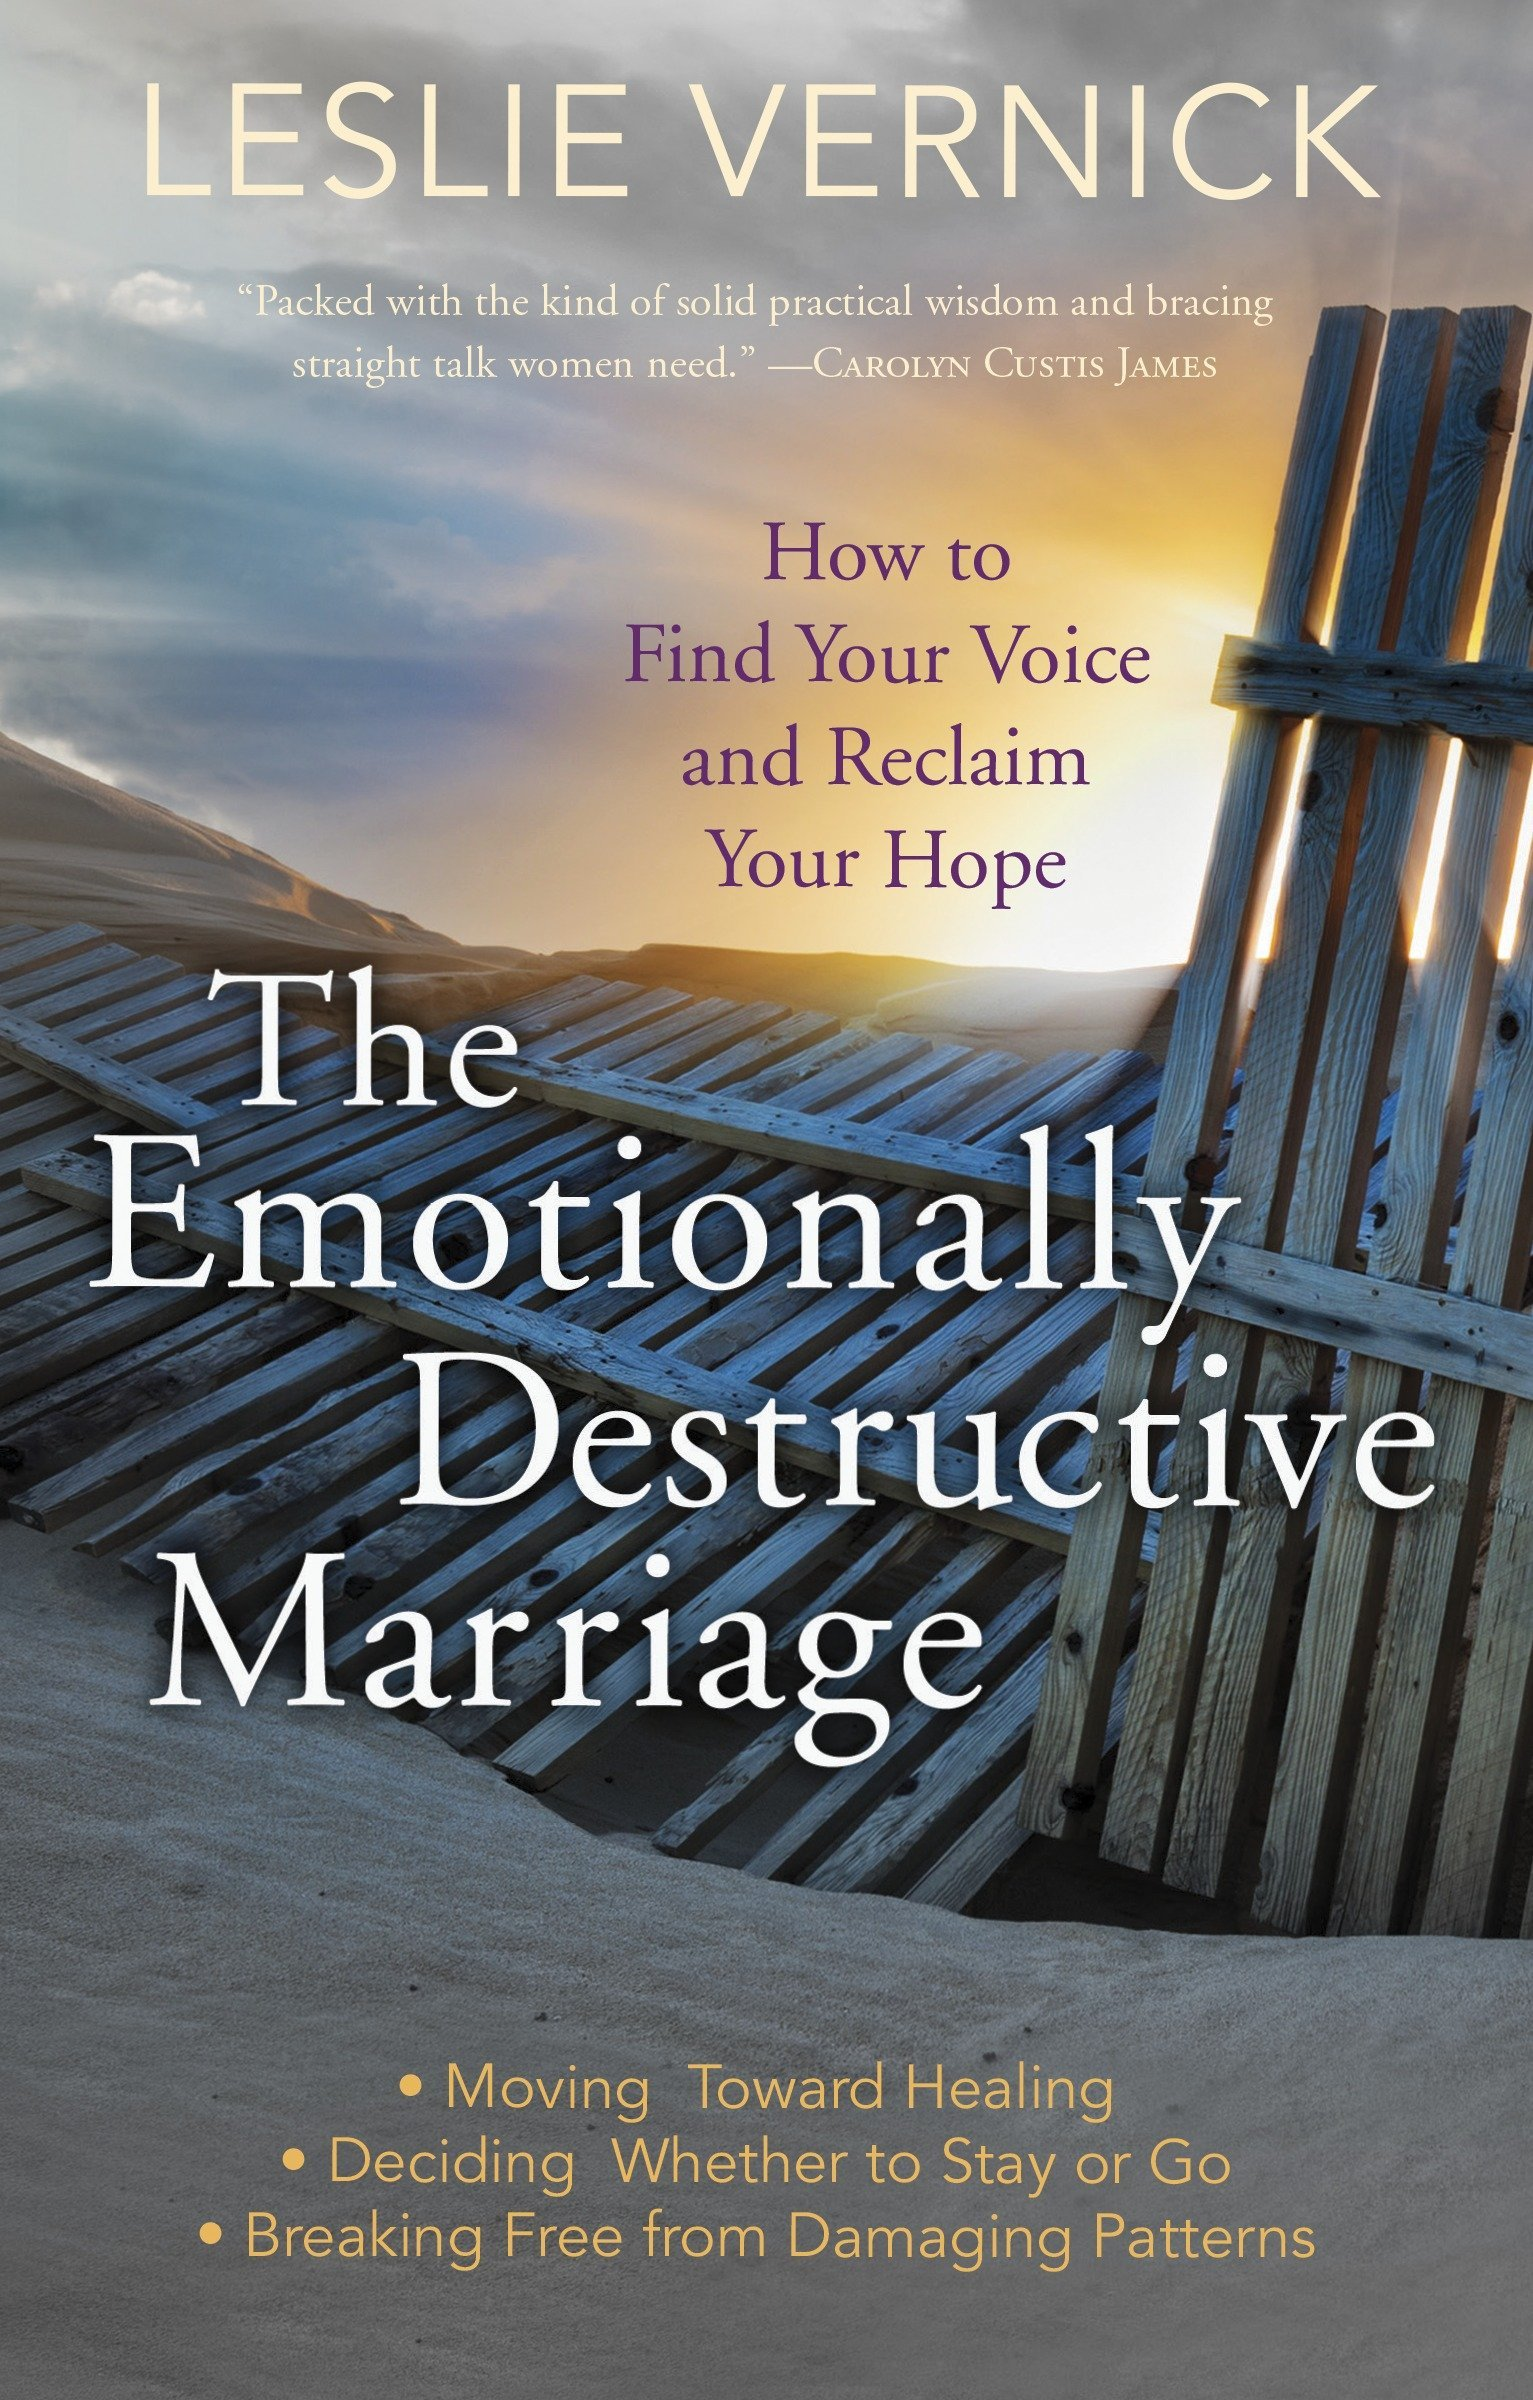 The Emotionally Destructive Marriage: How to Find Your Voice and Reclaim Your Hope by WaterBrook Press